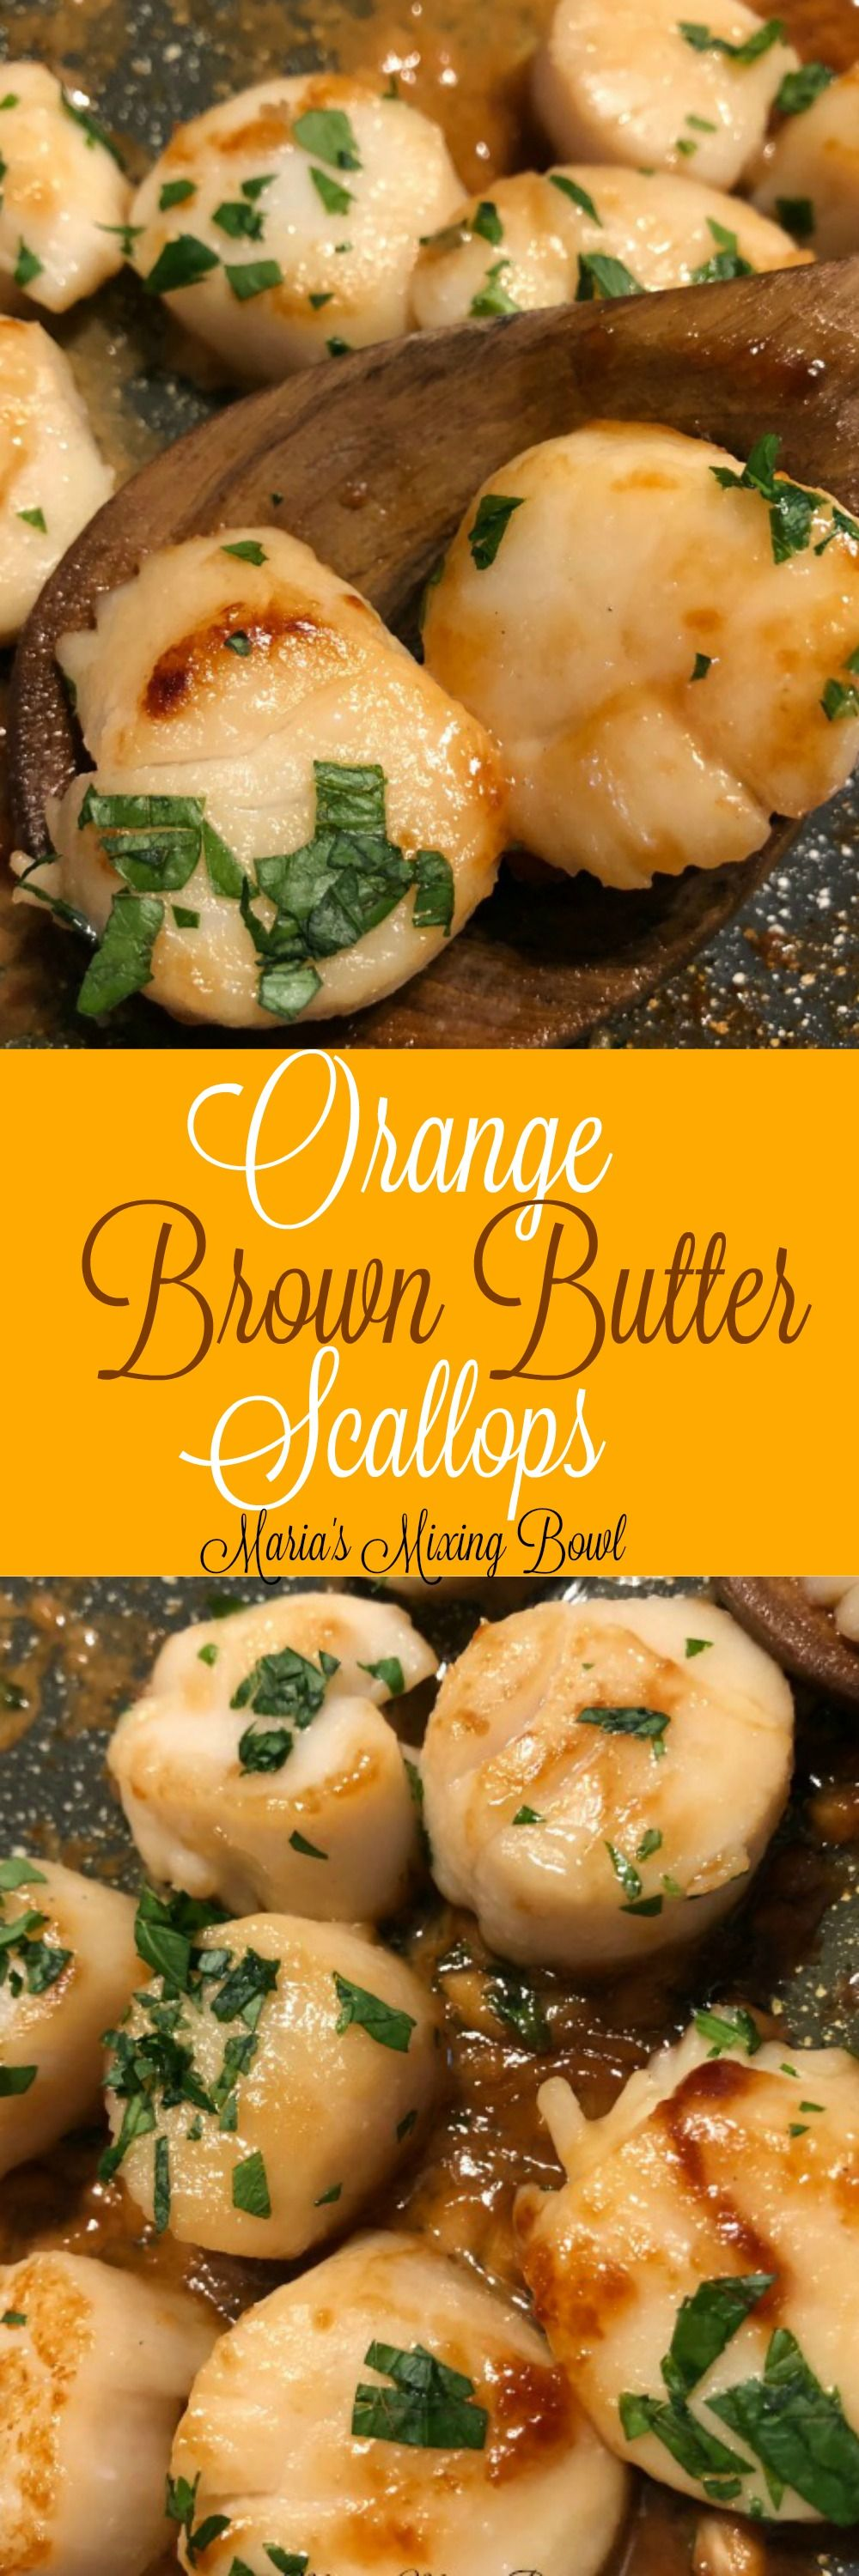 Orange Brown Butter Scallops Recipe-Seared Scallops with Orange Brown Butter Sauce is easy to cook but also the perfect special occasion dinner. #orange #scallops #brown #butter #seafood #delicious #easy #companydinner #weeknightmeal